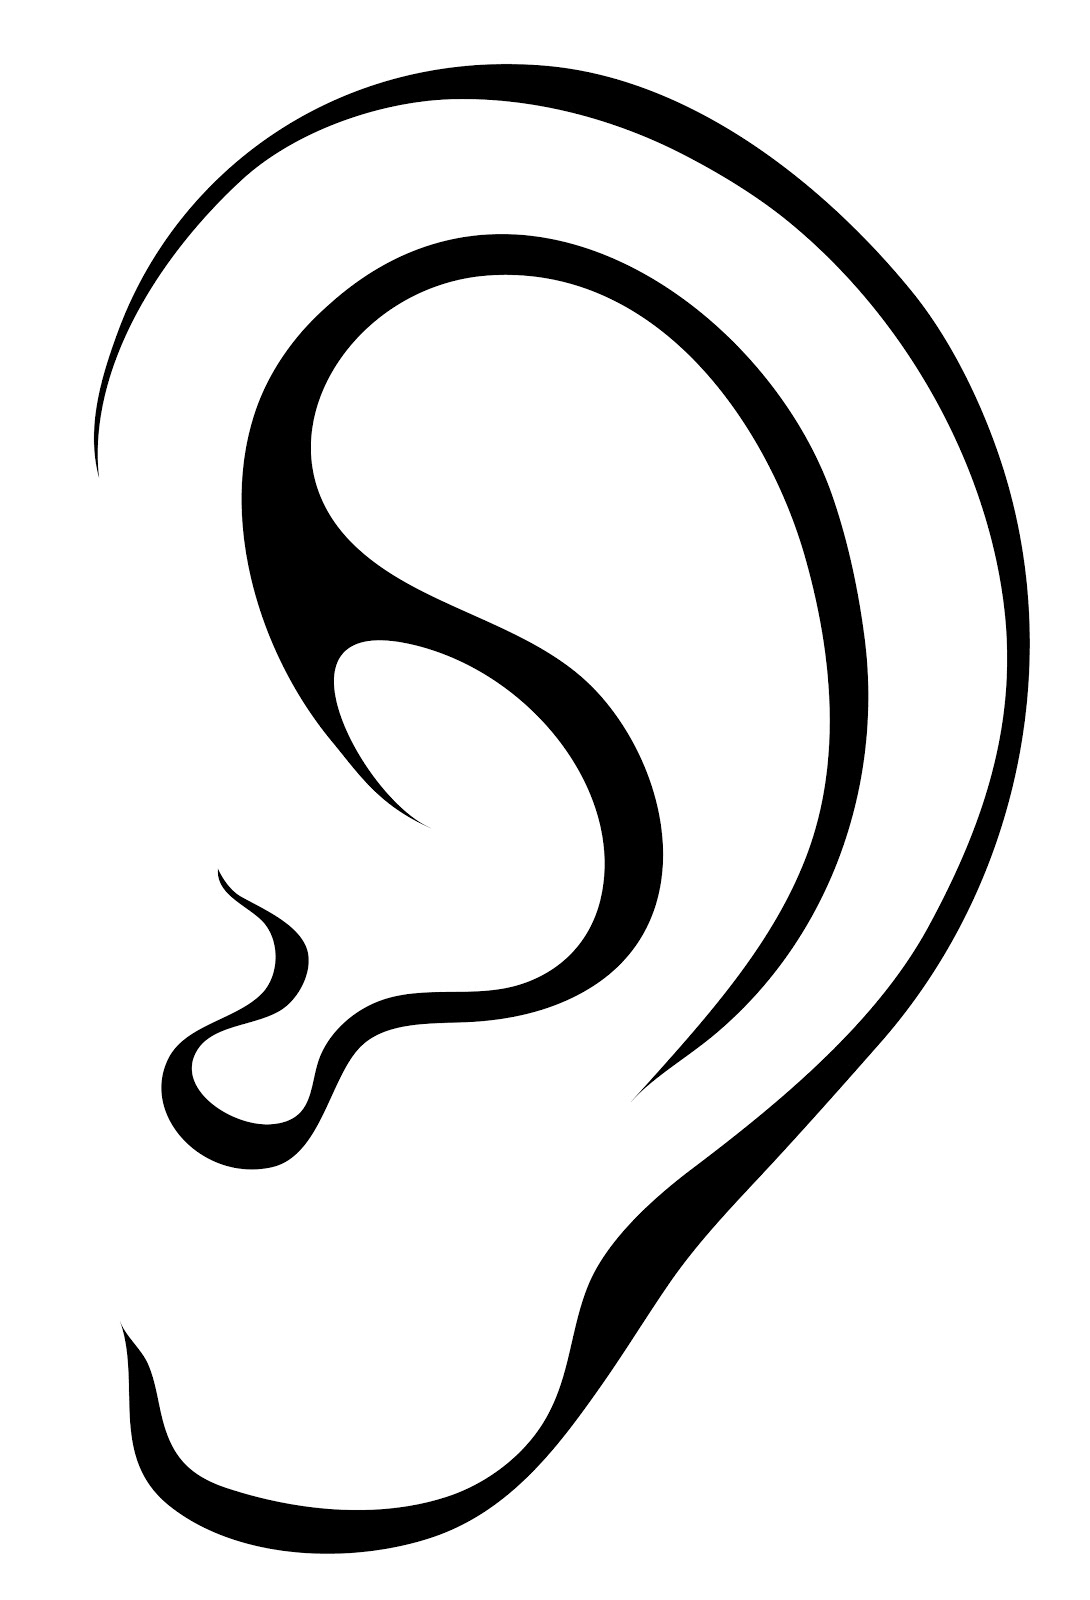 Listening ear images clipart panda free clipart images for Ear coloring pages